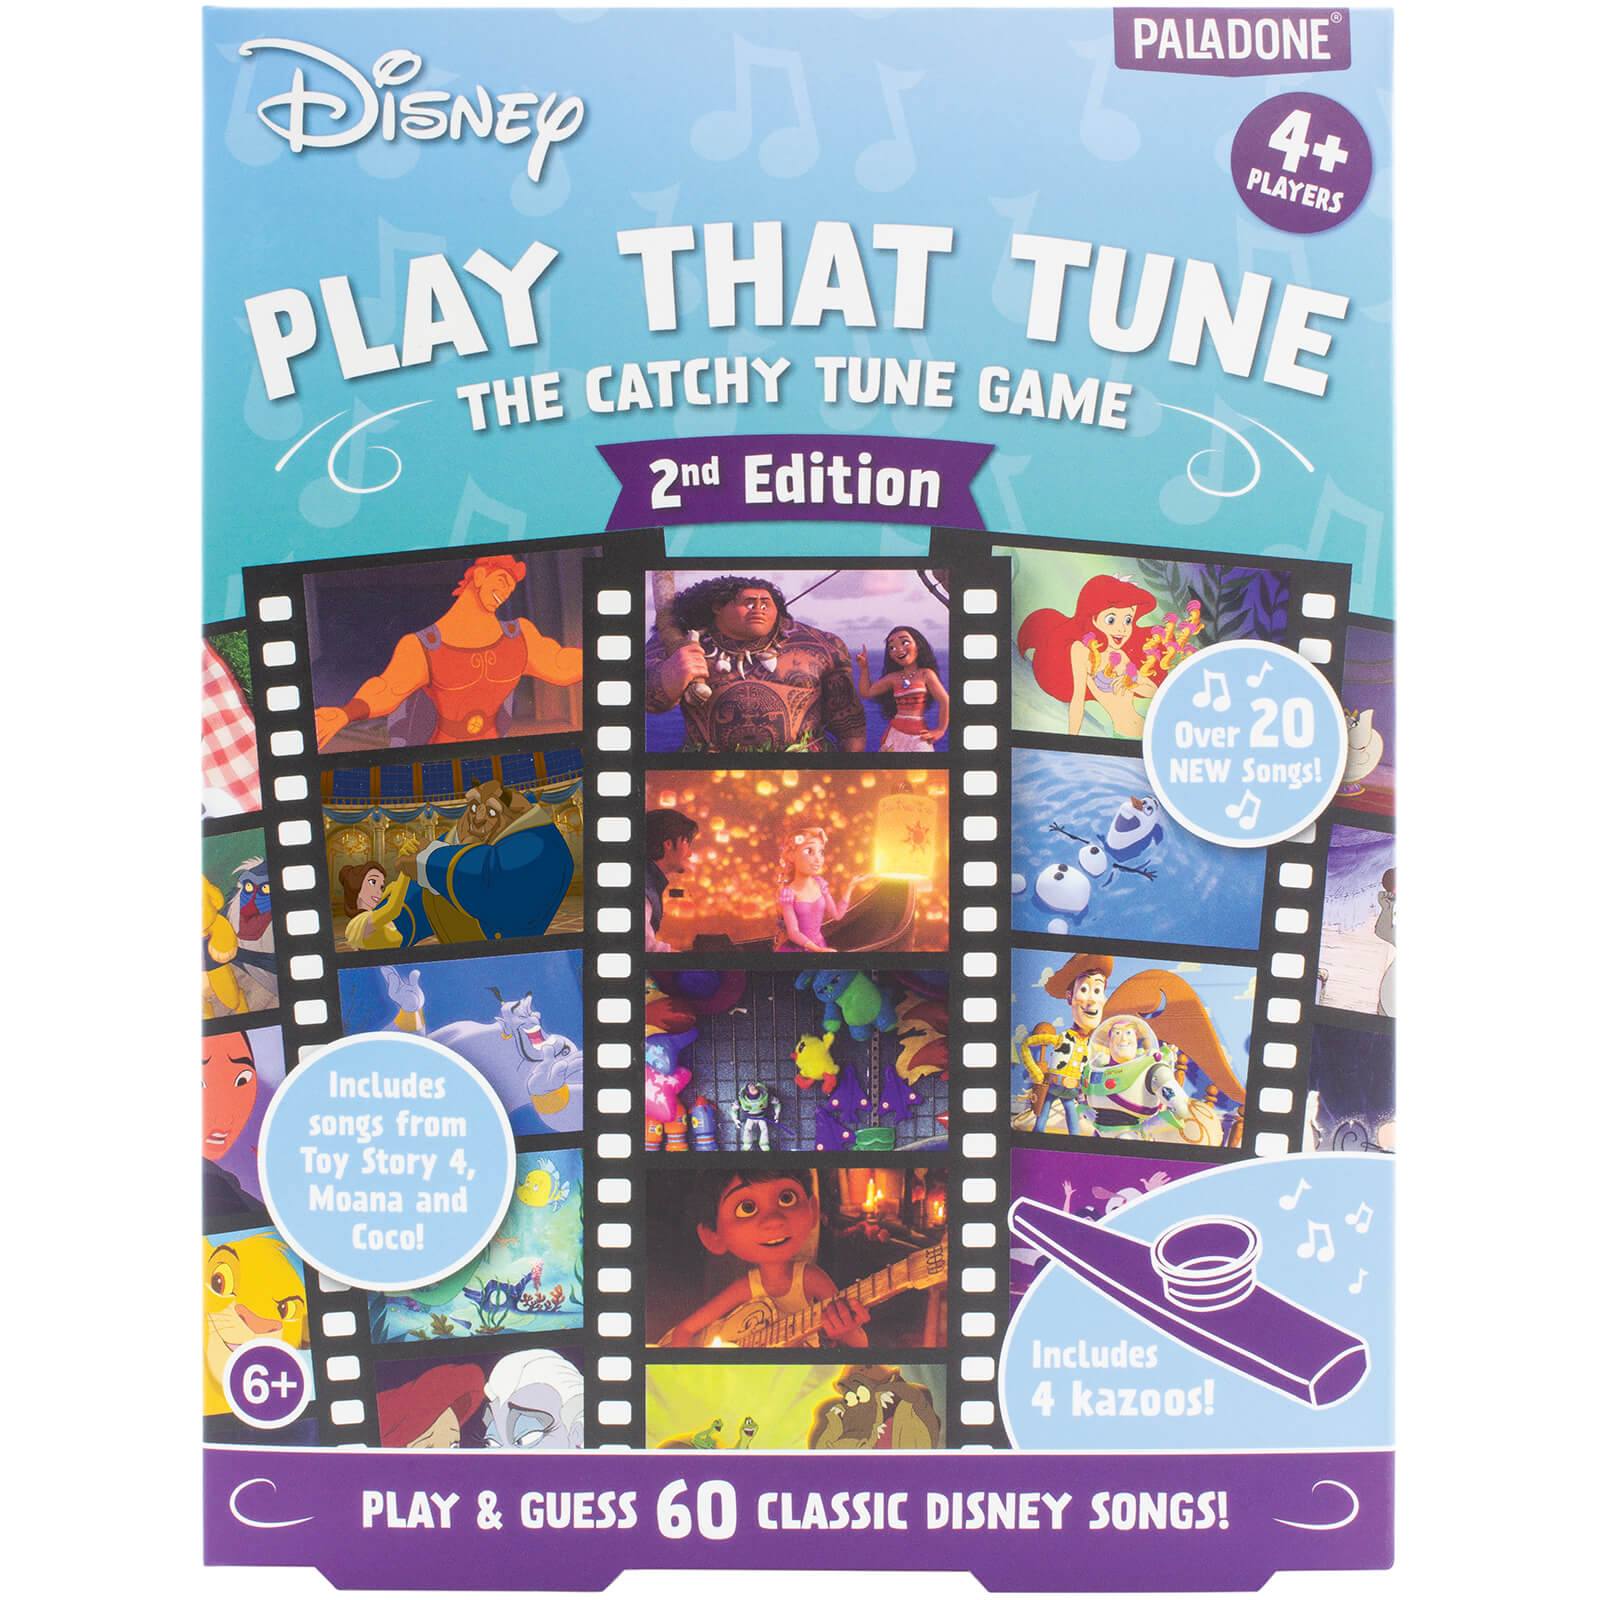 Image of Disney Play That Tune 2nd Edition